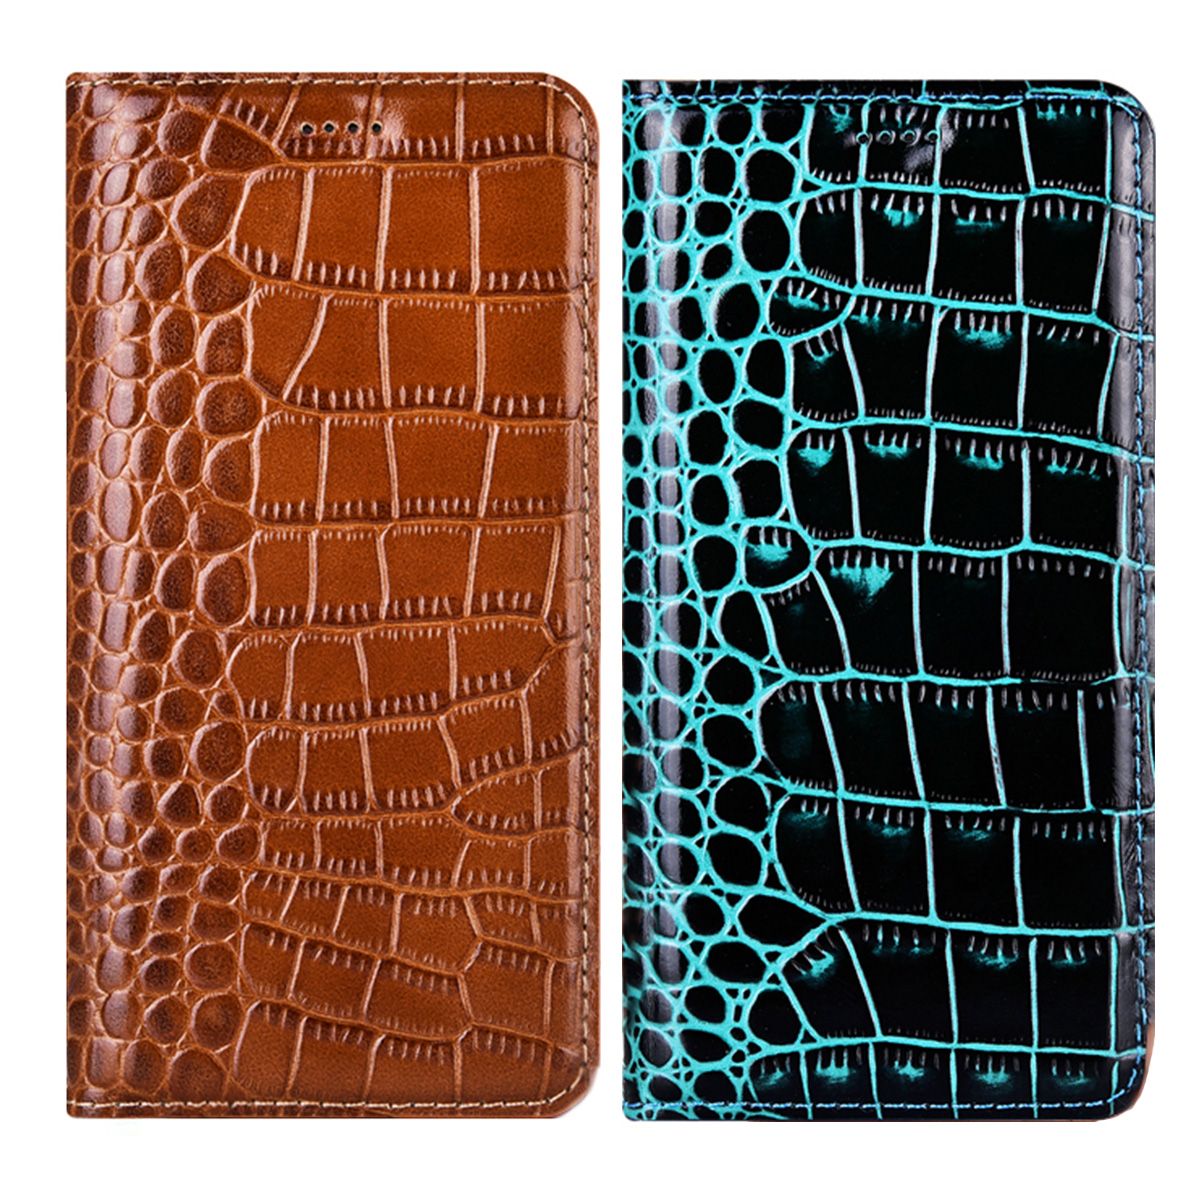 Crocodile Genuine Leather Flip Phone <font><b>Case</b></font> For <font><b>OPPO</b></font> <font><b>A5</b></font> A9 <font><b>2020</b></font> Realme 5i 6i 5S 5 6 Pro X2 X50 Pro C1 C2 C3 C11 Cover <font><b>Case</b></font> Coque image